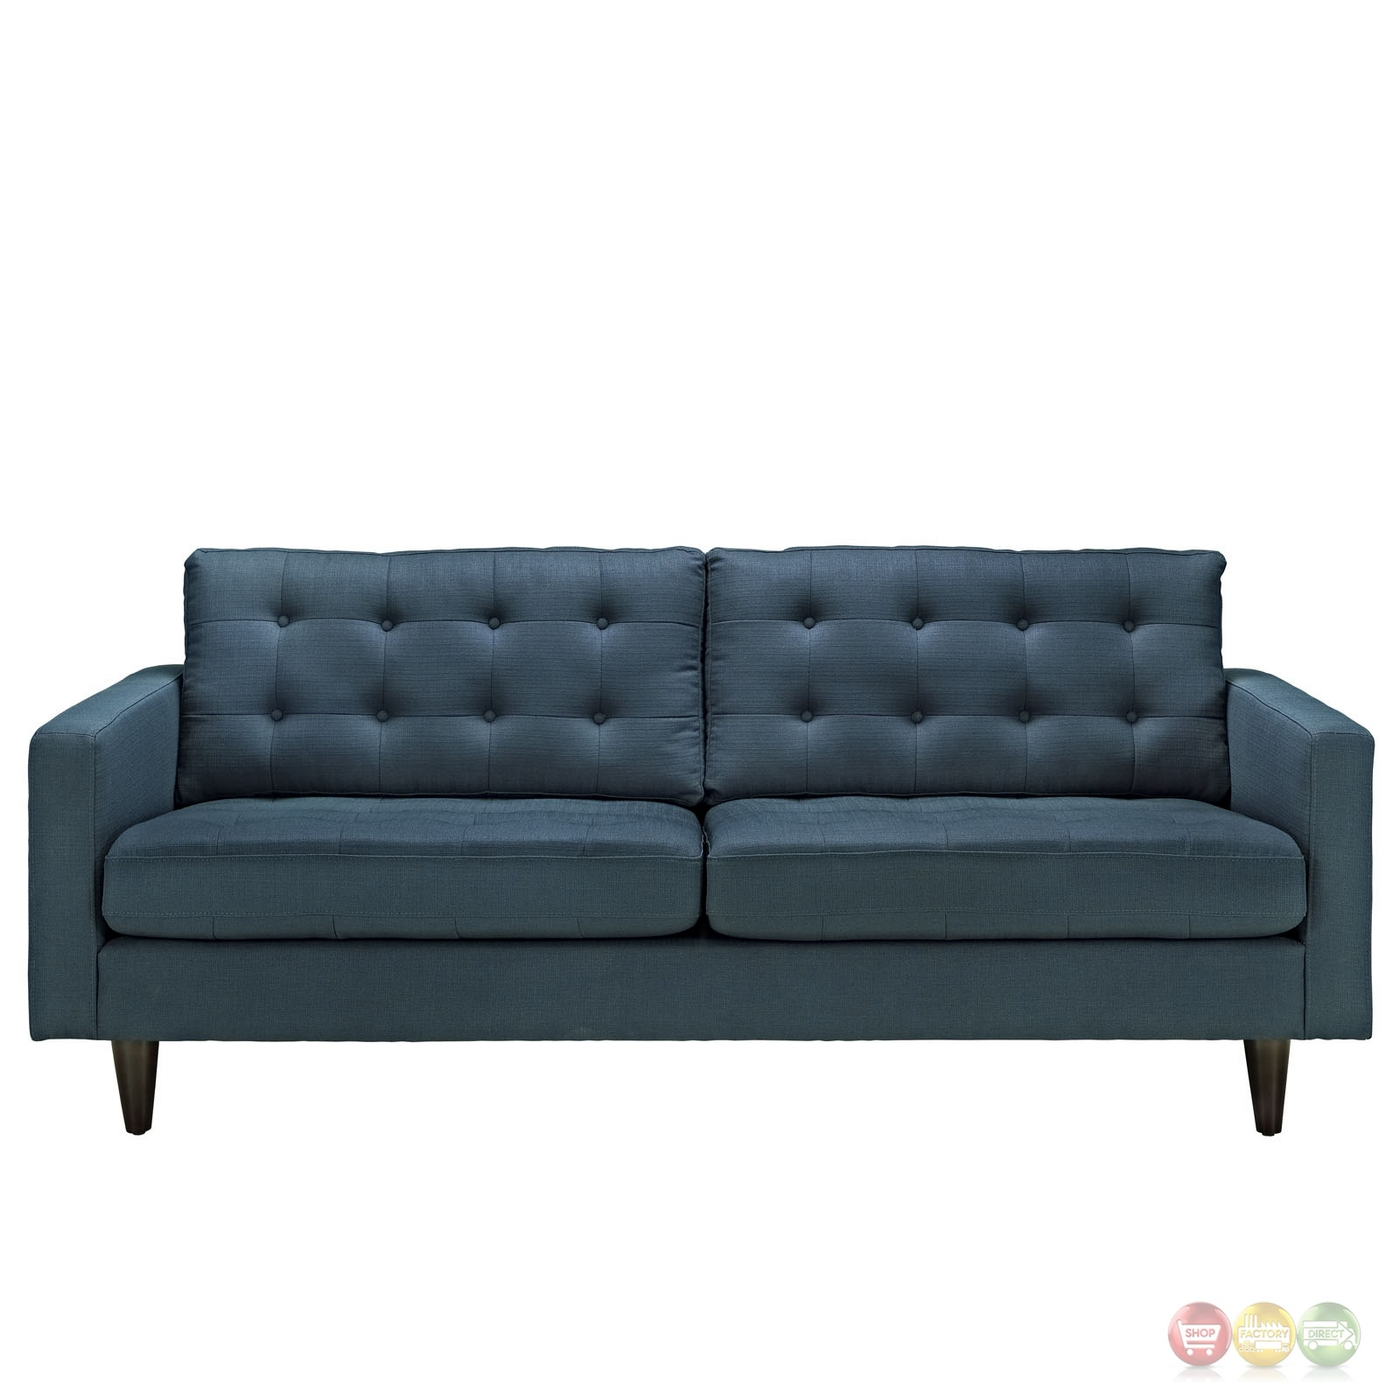 Empress contemporary button tufted upholstered sofa azure for Modern contemporary furniture